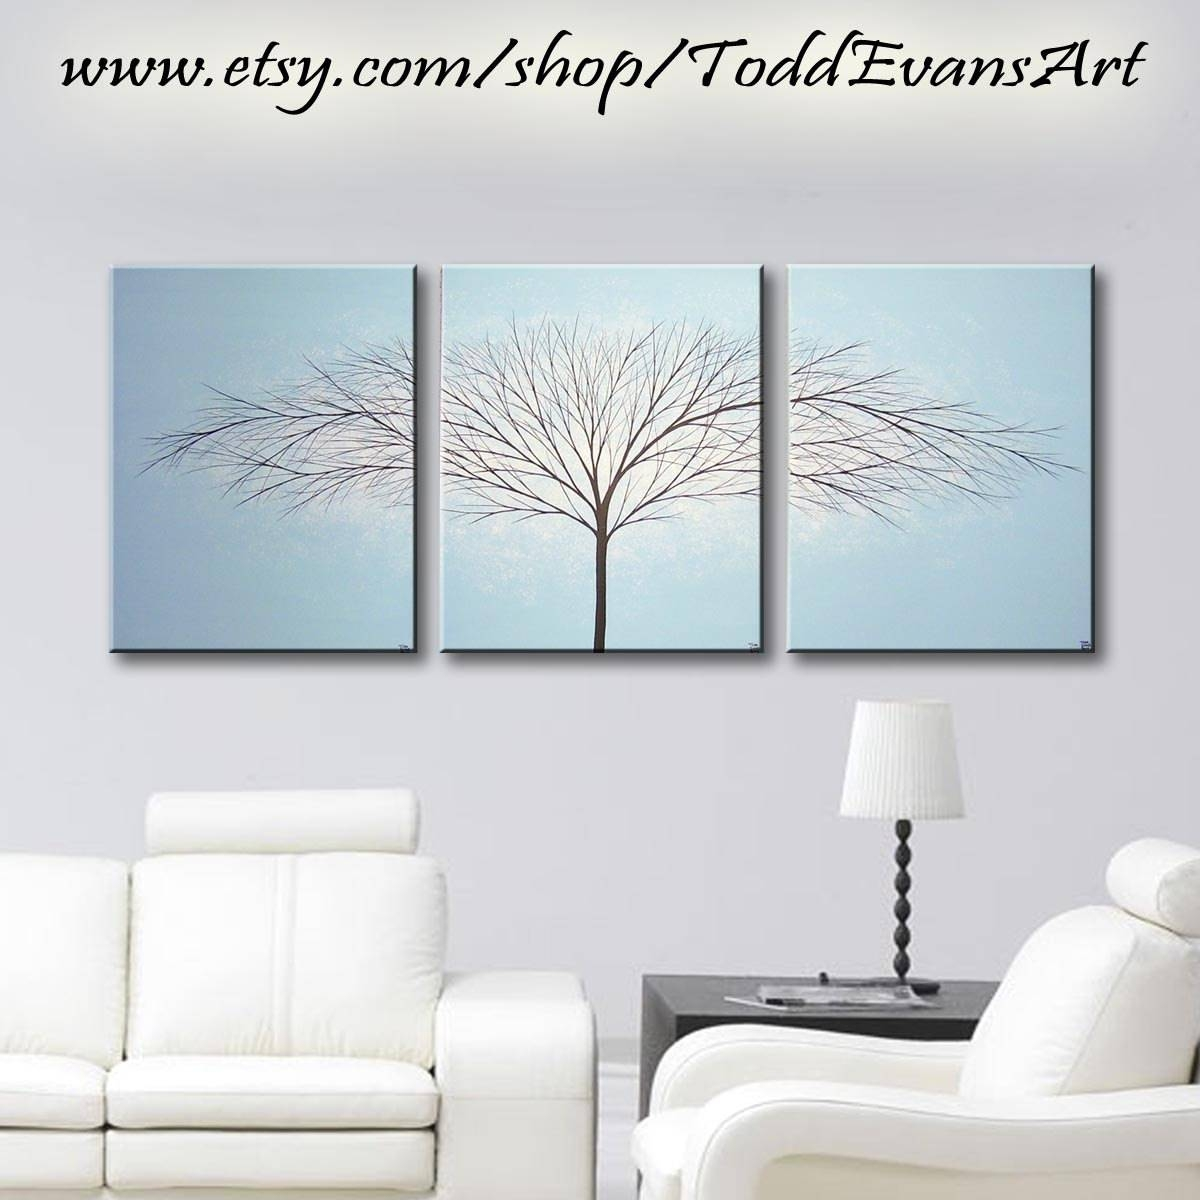 Tree Painting 3 Piece Wall Art Large Canvas Art Painting Throughout Latest Three Piece Wall Art Sets (View 12 of 15)